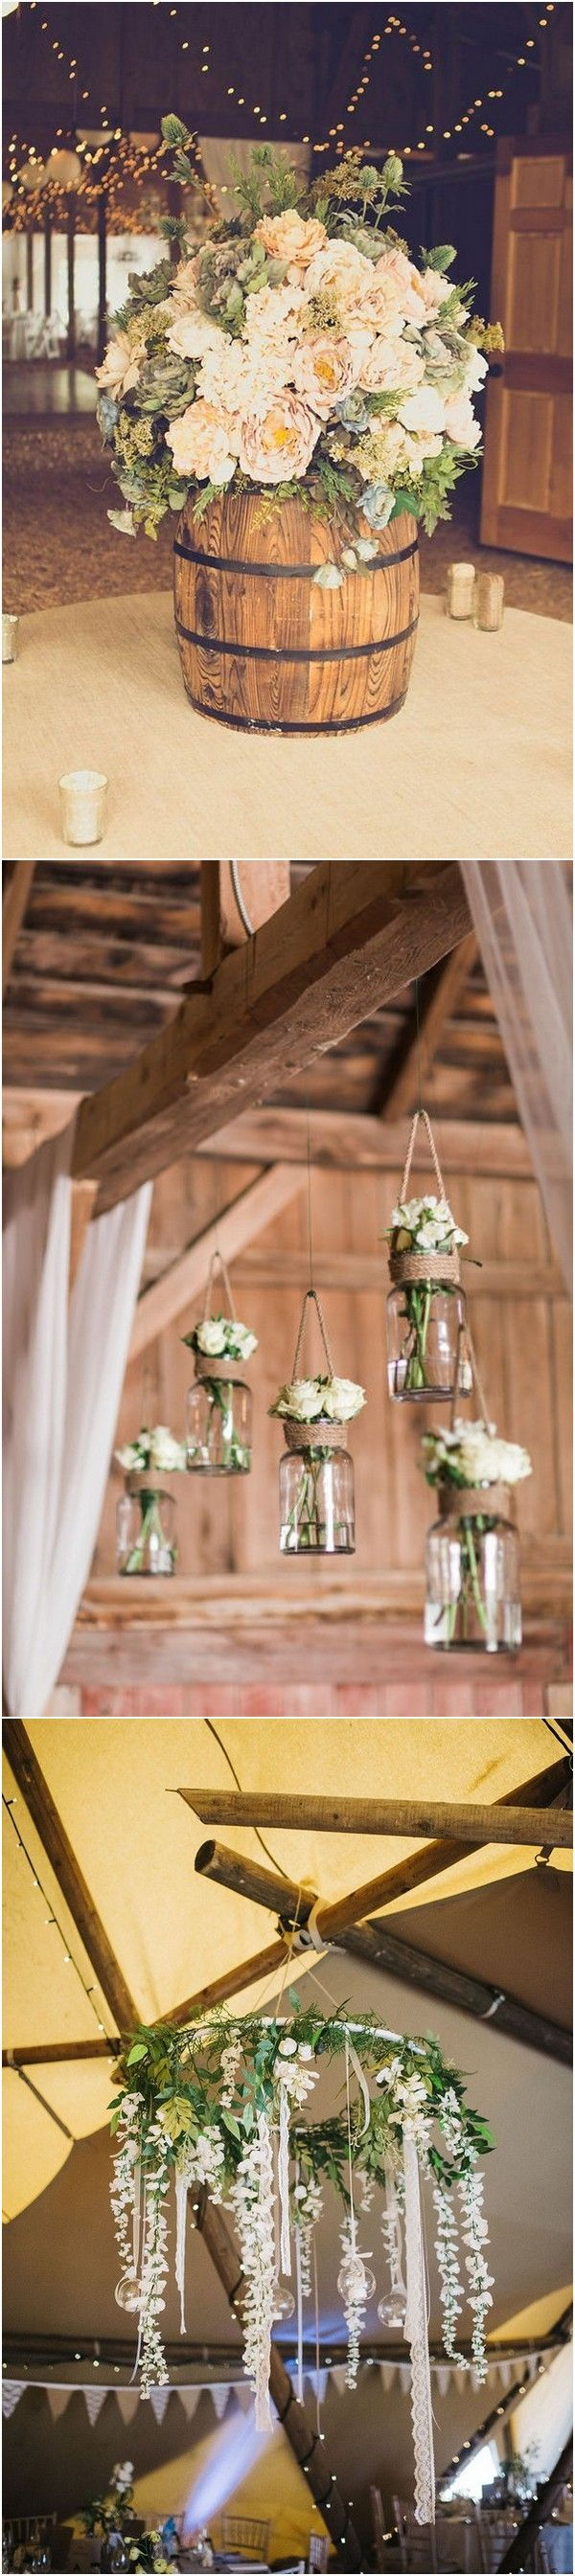 Country wedding decoration ideas   Perfect Country Rustic Barn Wedding Decoration Ideas  Barn